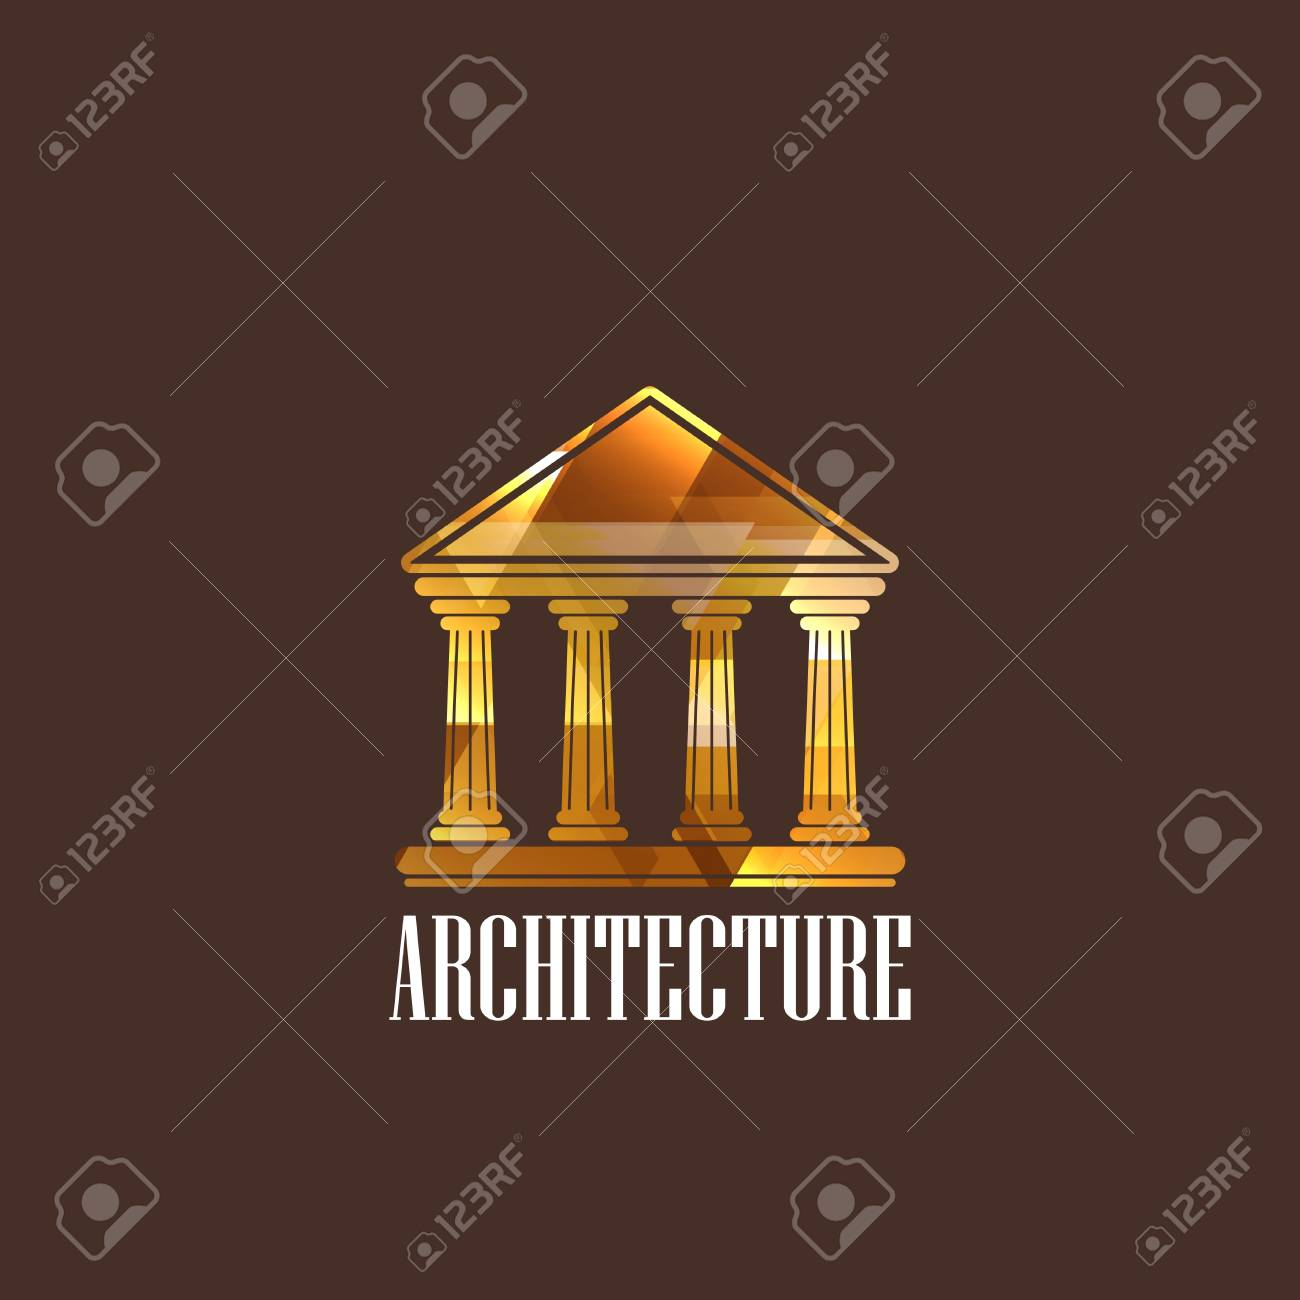 illustration with building icon Stock Vector - 22030279